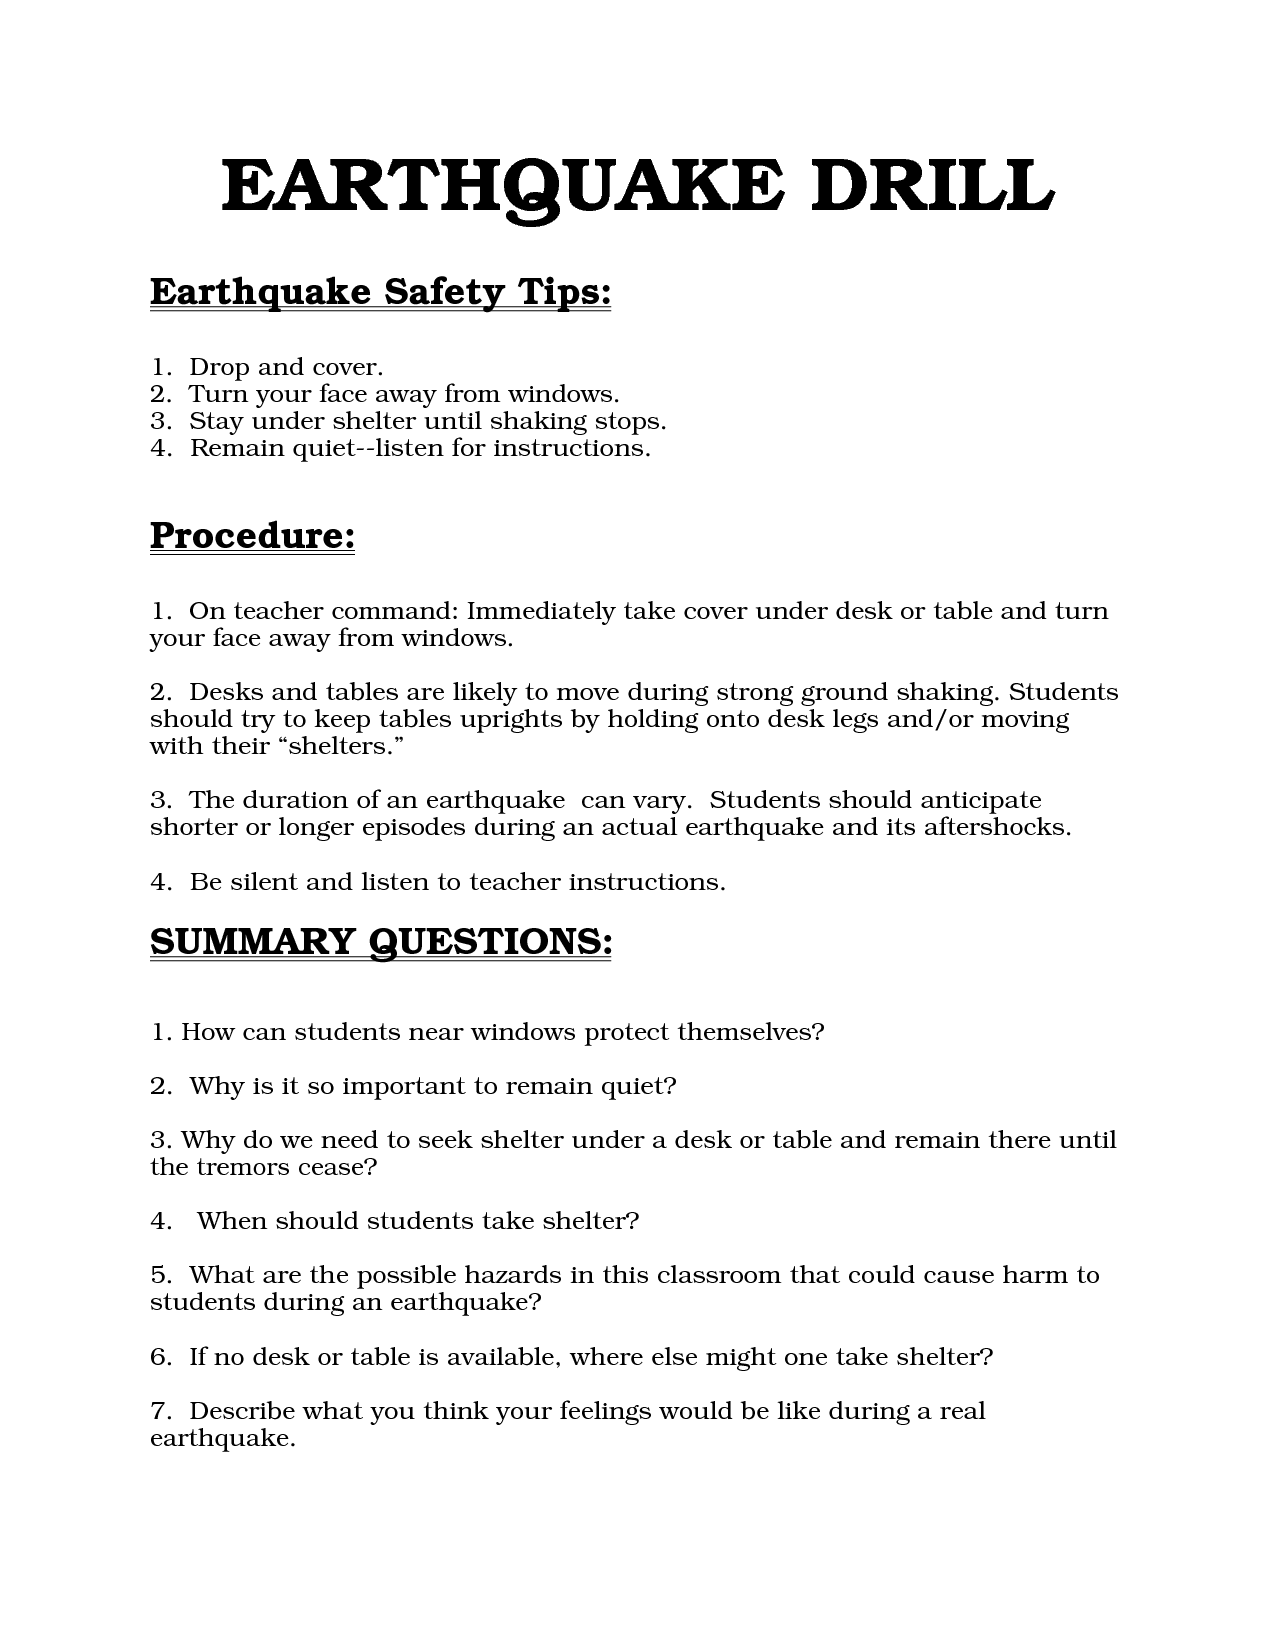 Earthquake Drill Education Quotes For Teachers Education Education Motivation